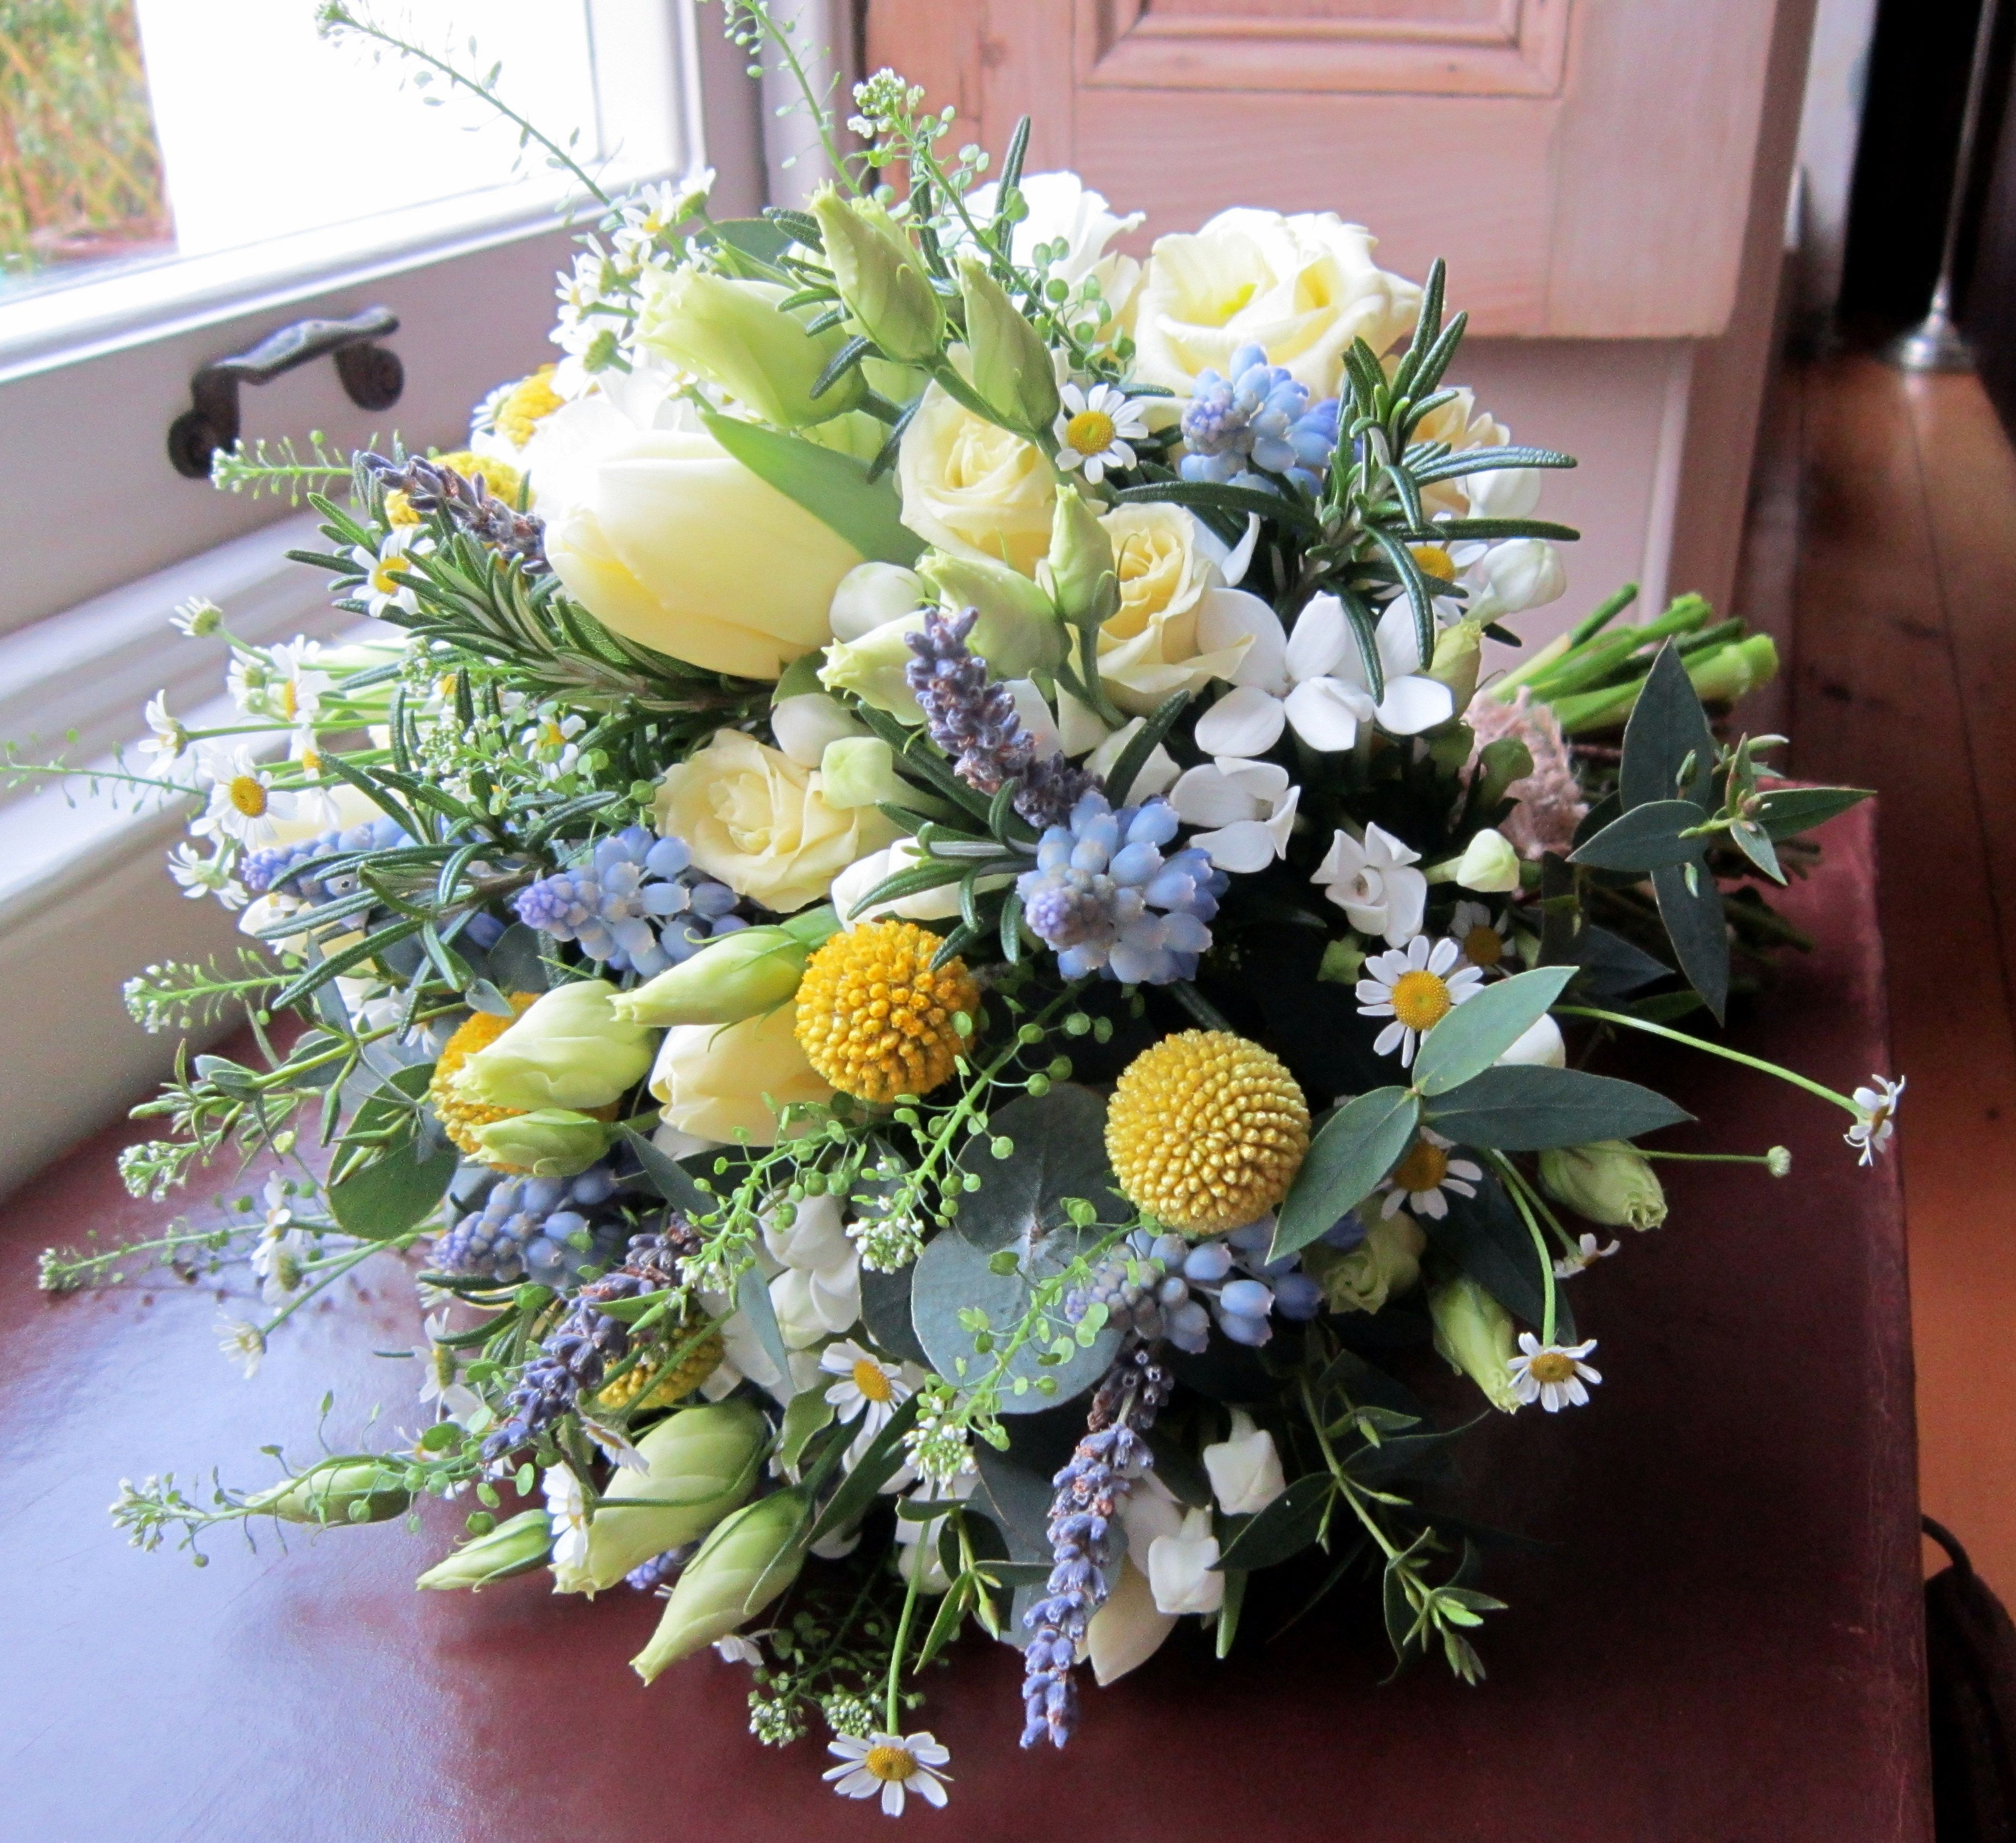 Very natural handtied bouquet of herbs blue grape hyacinths very natural handtied bouquet of herbs blue grape hyacinths lemon tulips white daisies dhlflorist Choice Image